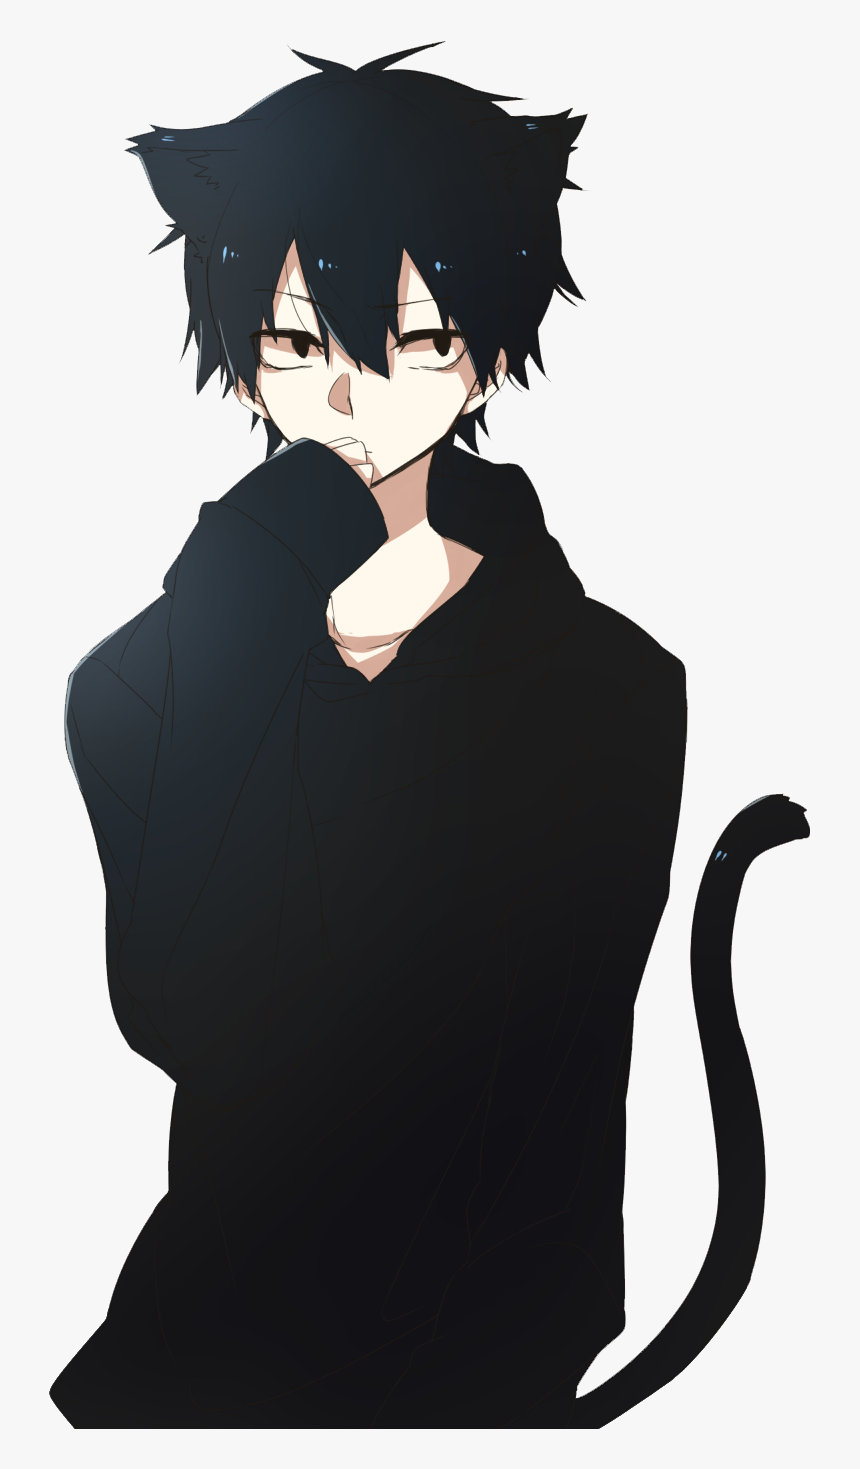 Anime Boy Cute Nekoboy Neko Cute Anime Boy With Black Hair Hd Png Download Transparent Png Image Pngitem